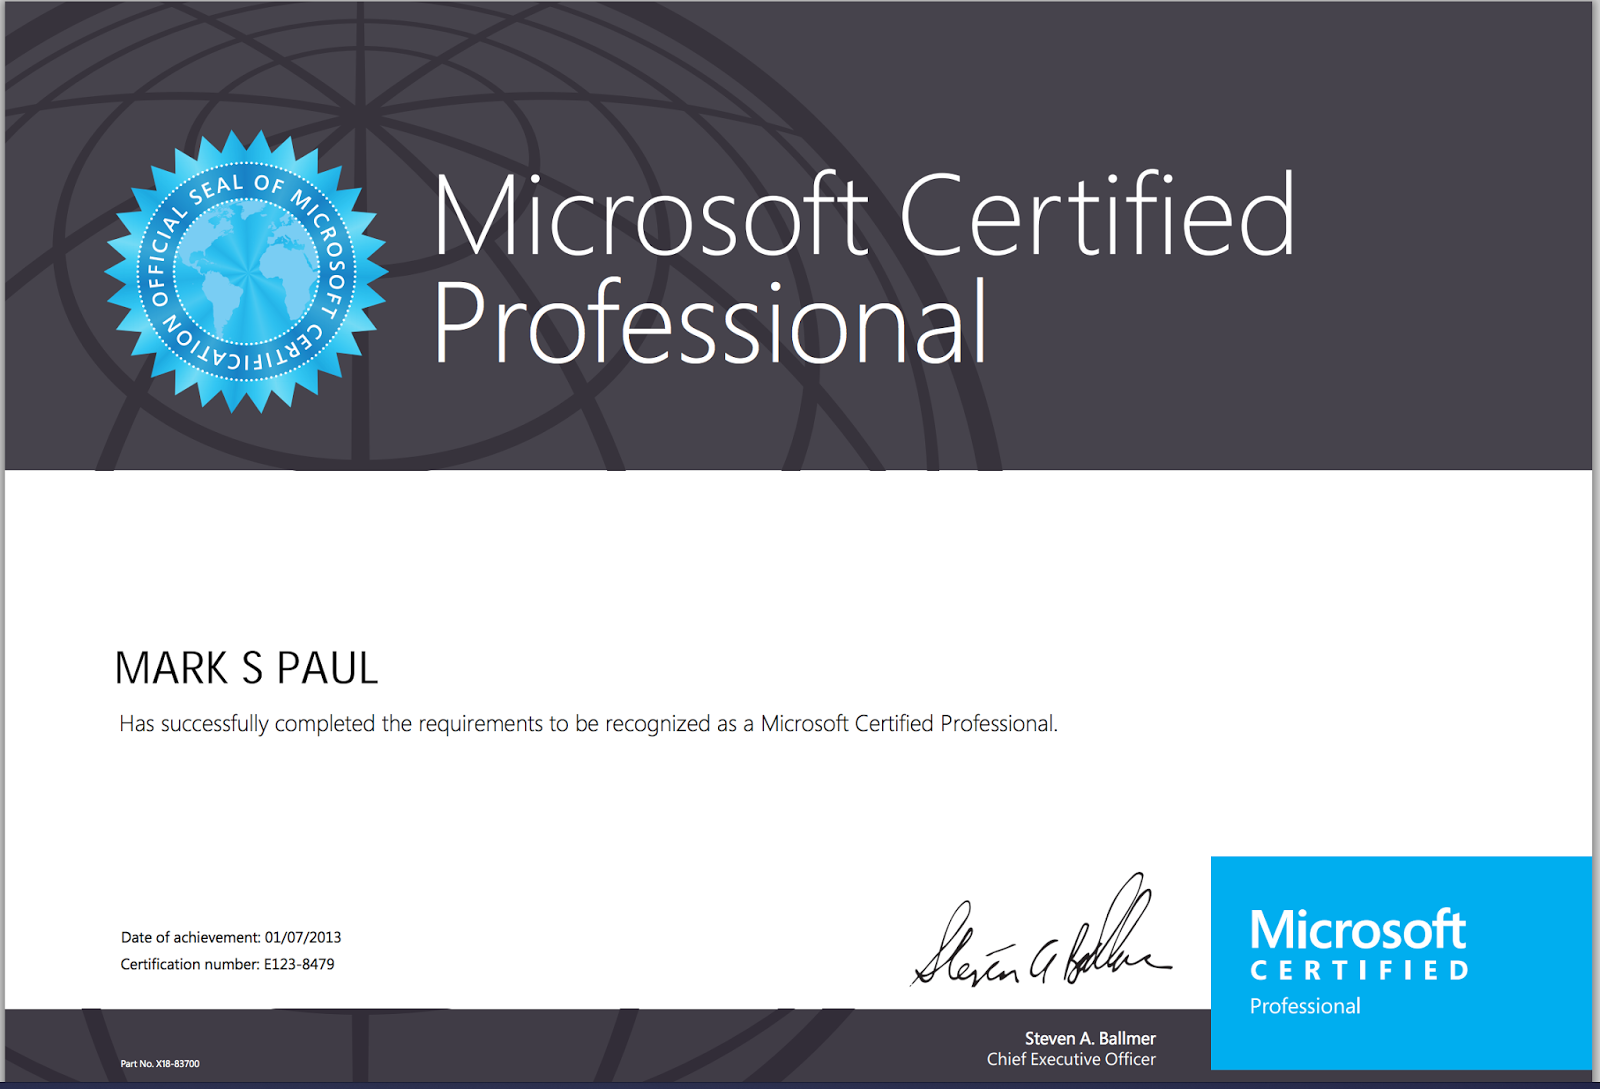 How to a Microsoft Certified Professional